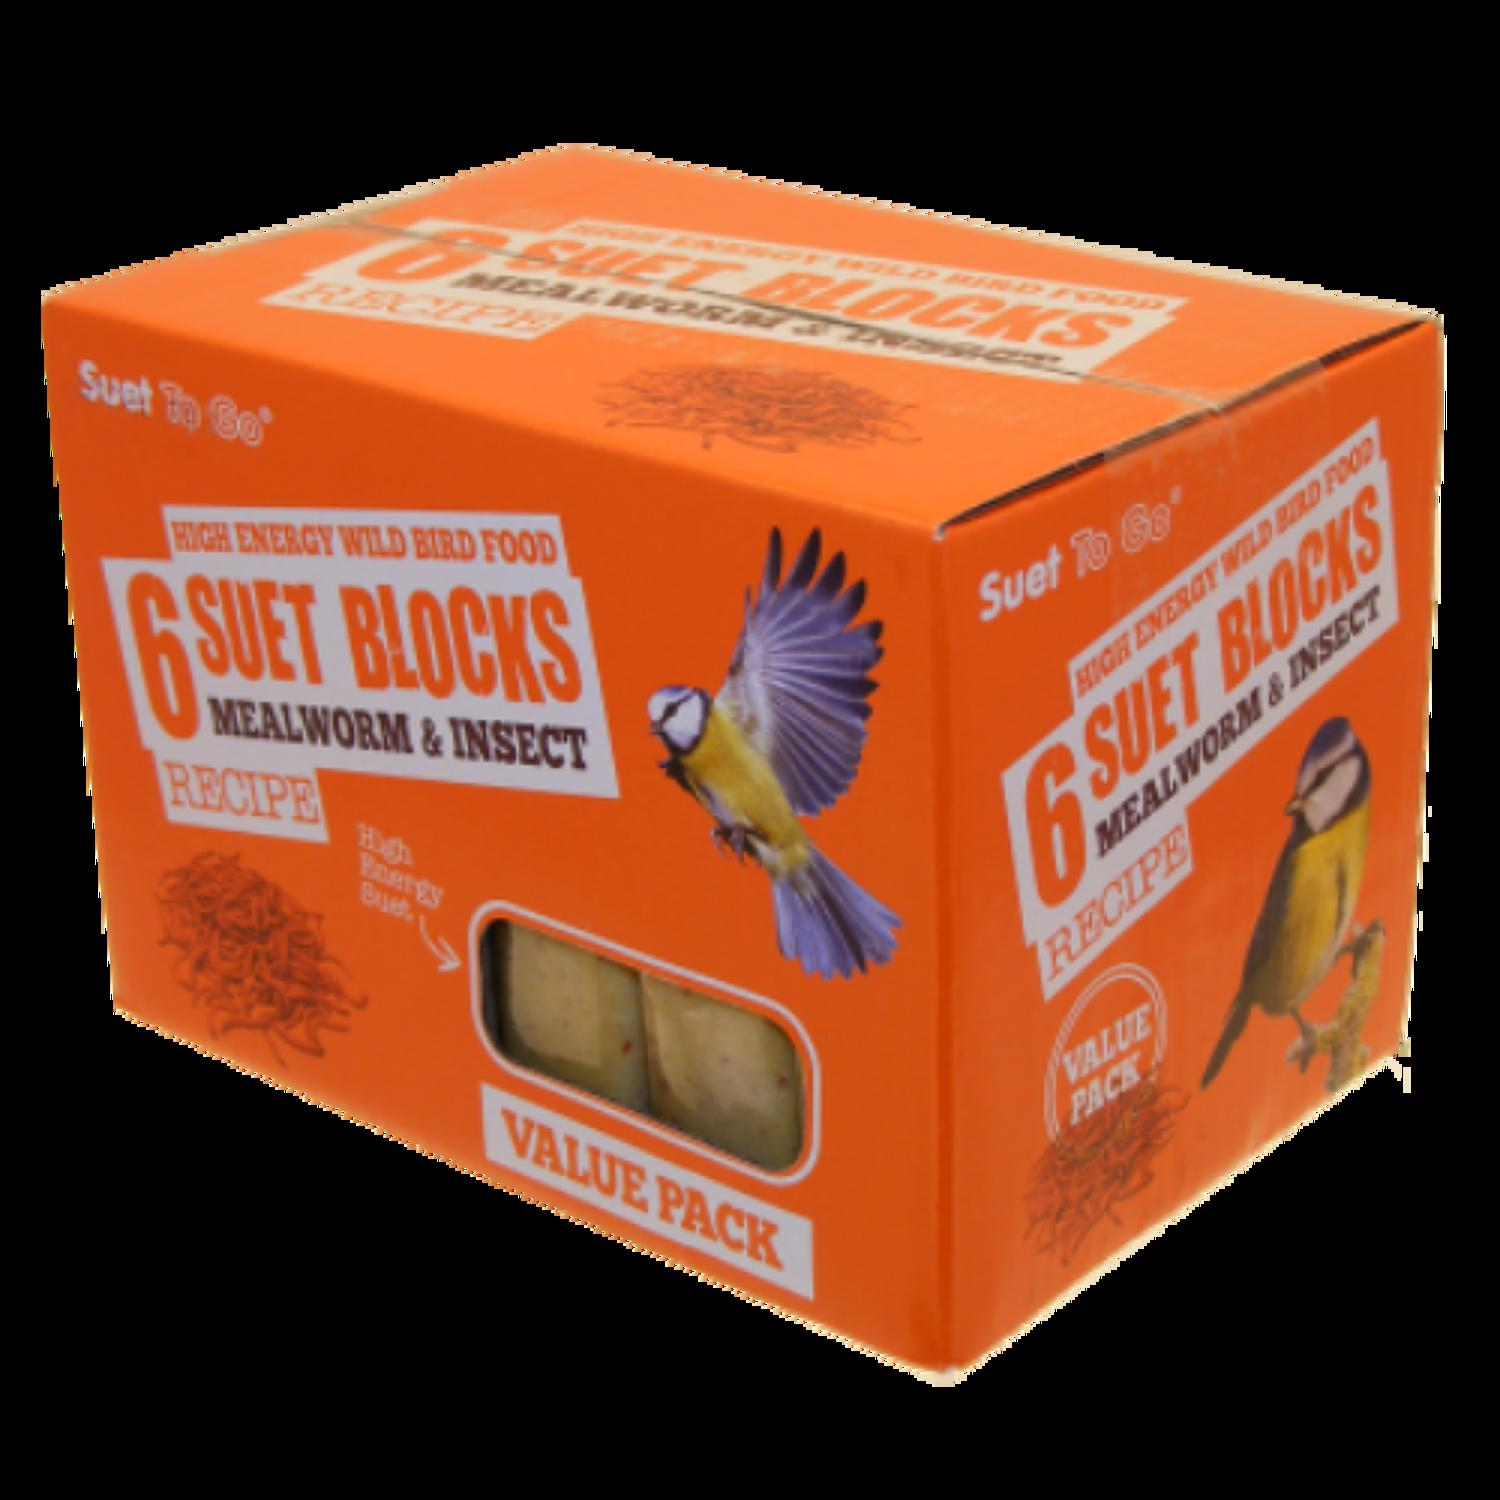 SuetToGo Mealworms&Insect Suet Blocks 6Pk